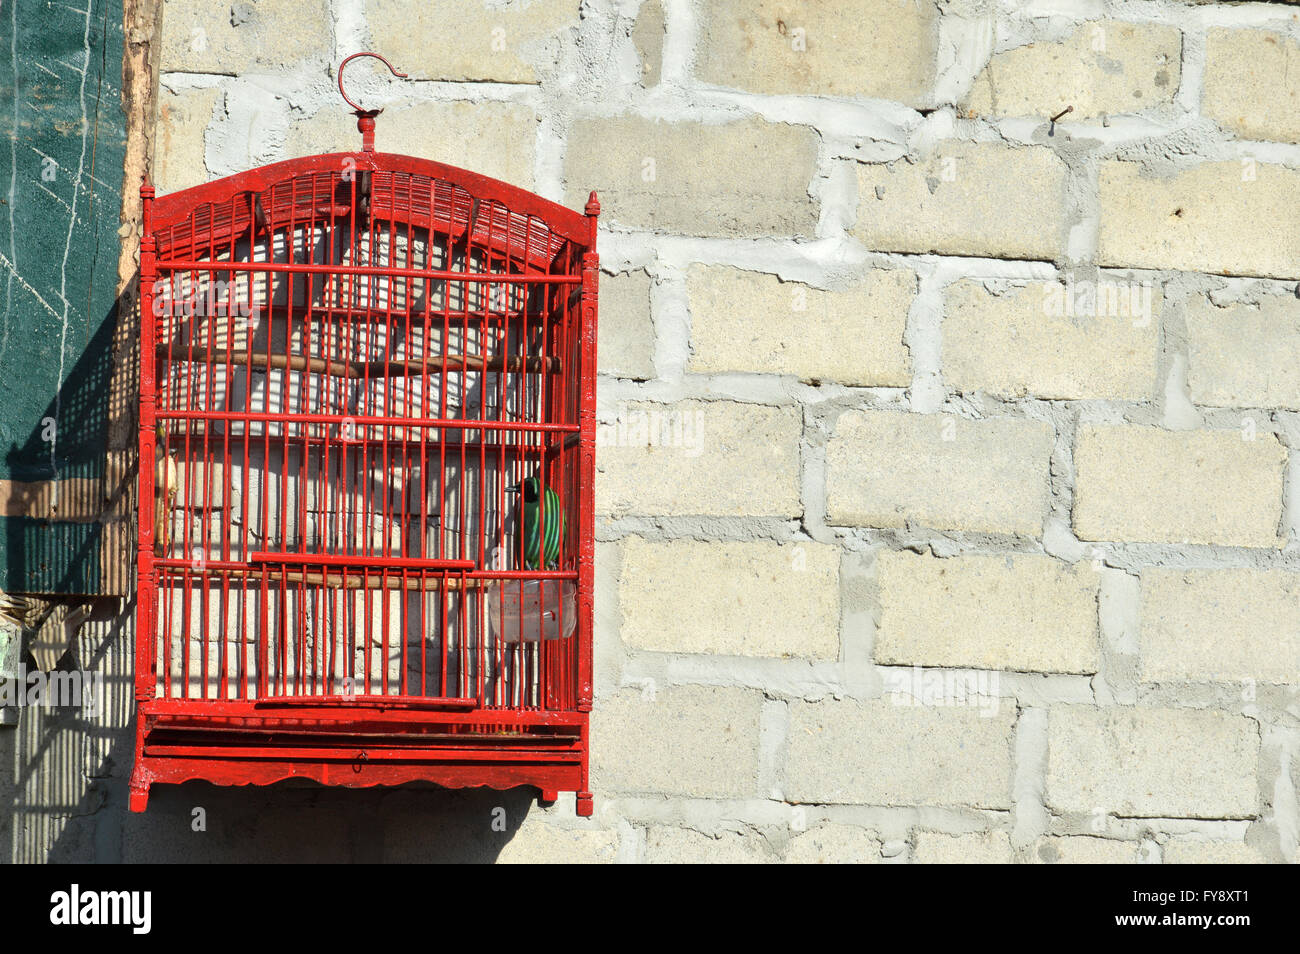 Bird In A Cage Hang On The Concrete Wall Stock Photo 102844225 Alamy